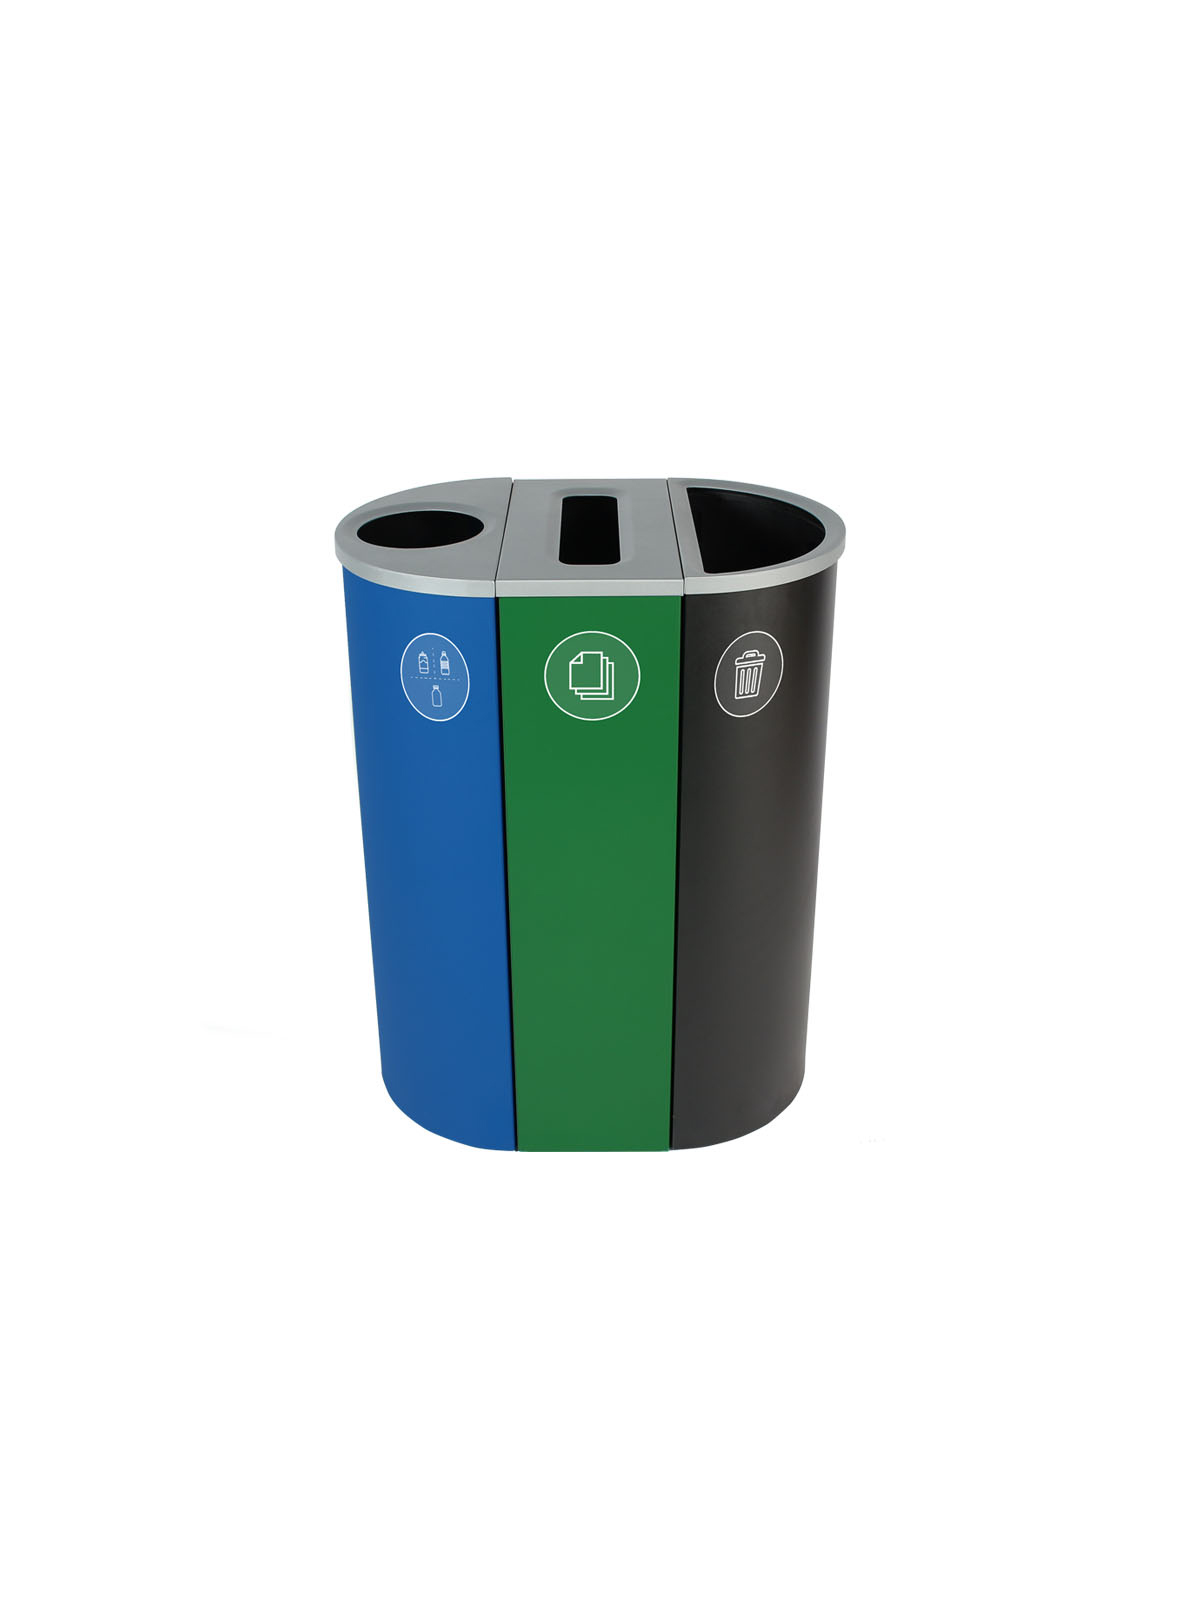 SPECTRUM - Triple - Nyc Compliant - Metal, Glass, Plastic & Beverage Containers-Paper-Garbage - Circle-Slot-Full - Blue-Green-Black